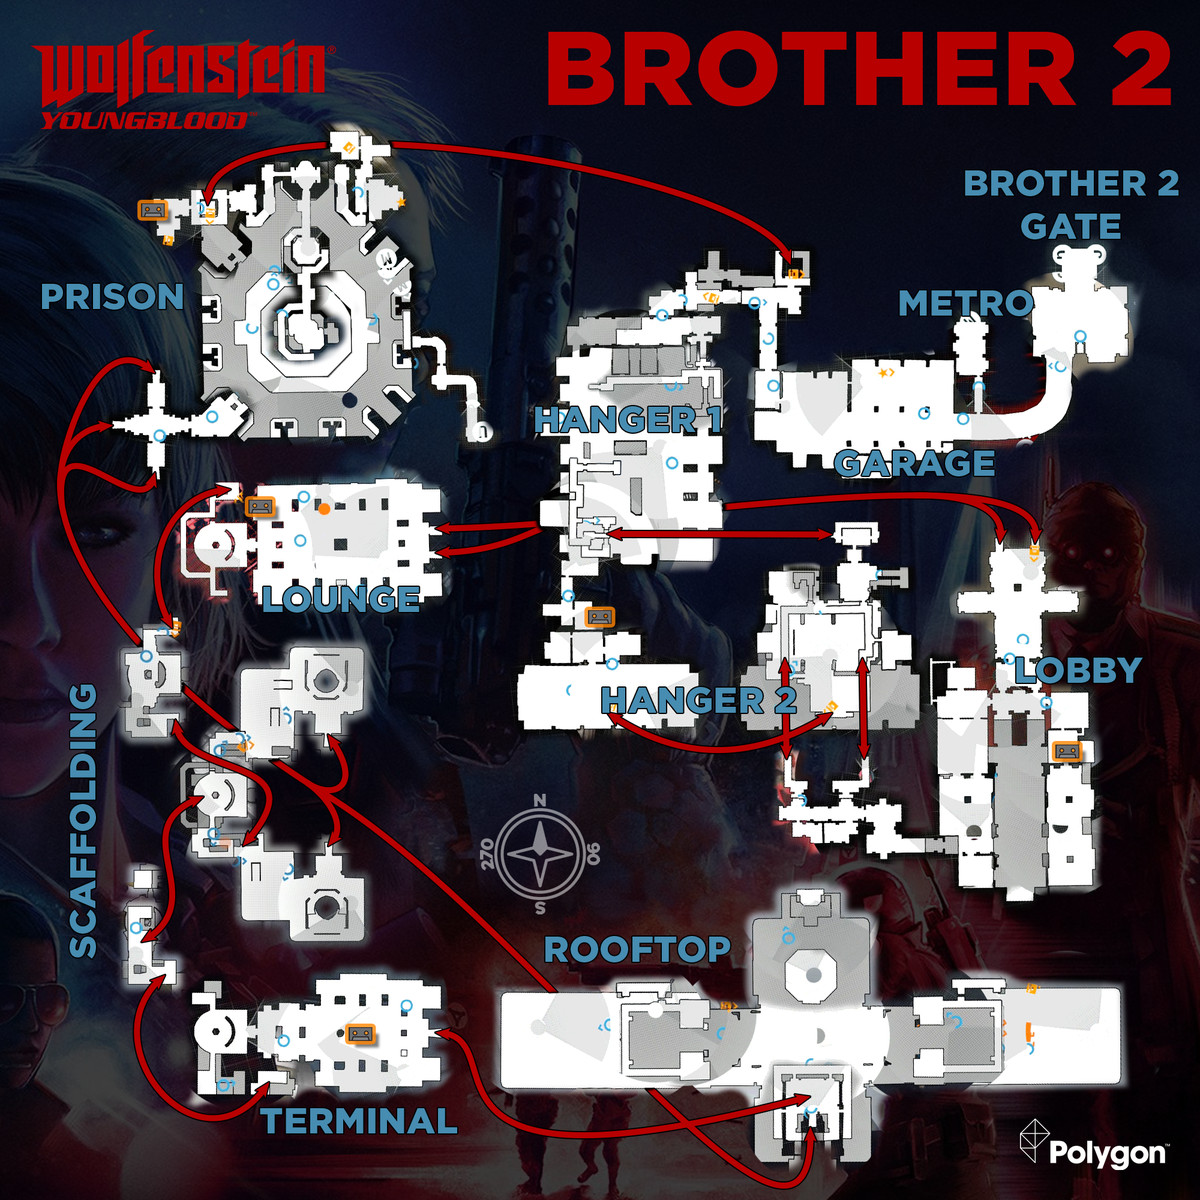 Wolfenstein: Youngblood Brother 2 map with Cassette Tapes locations